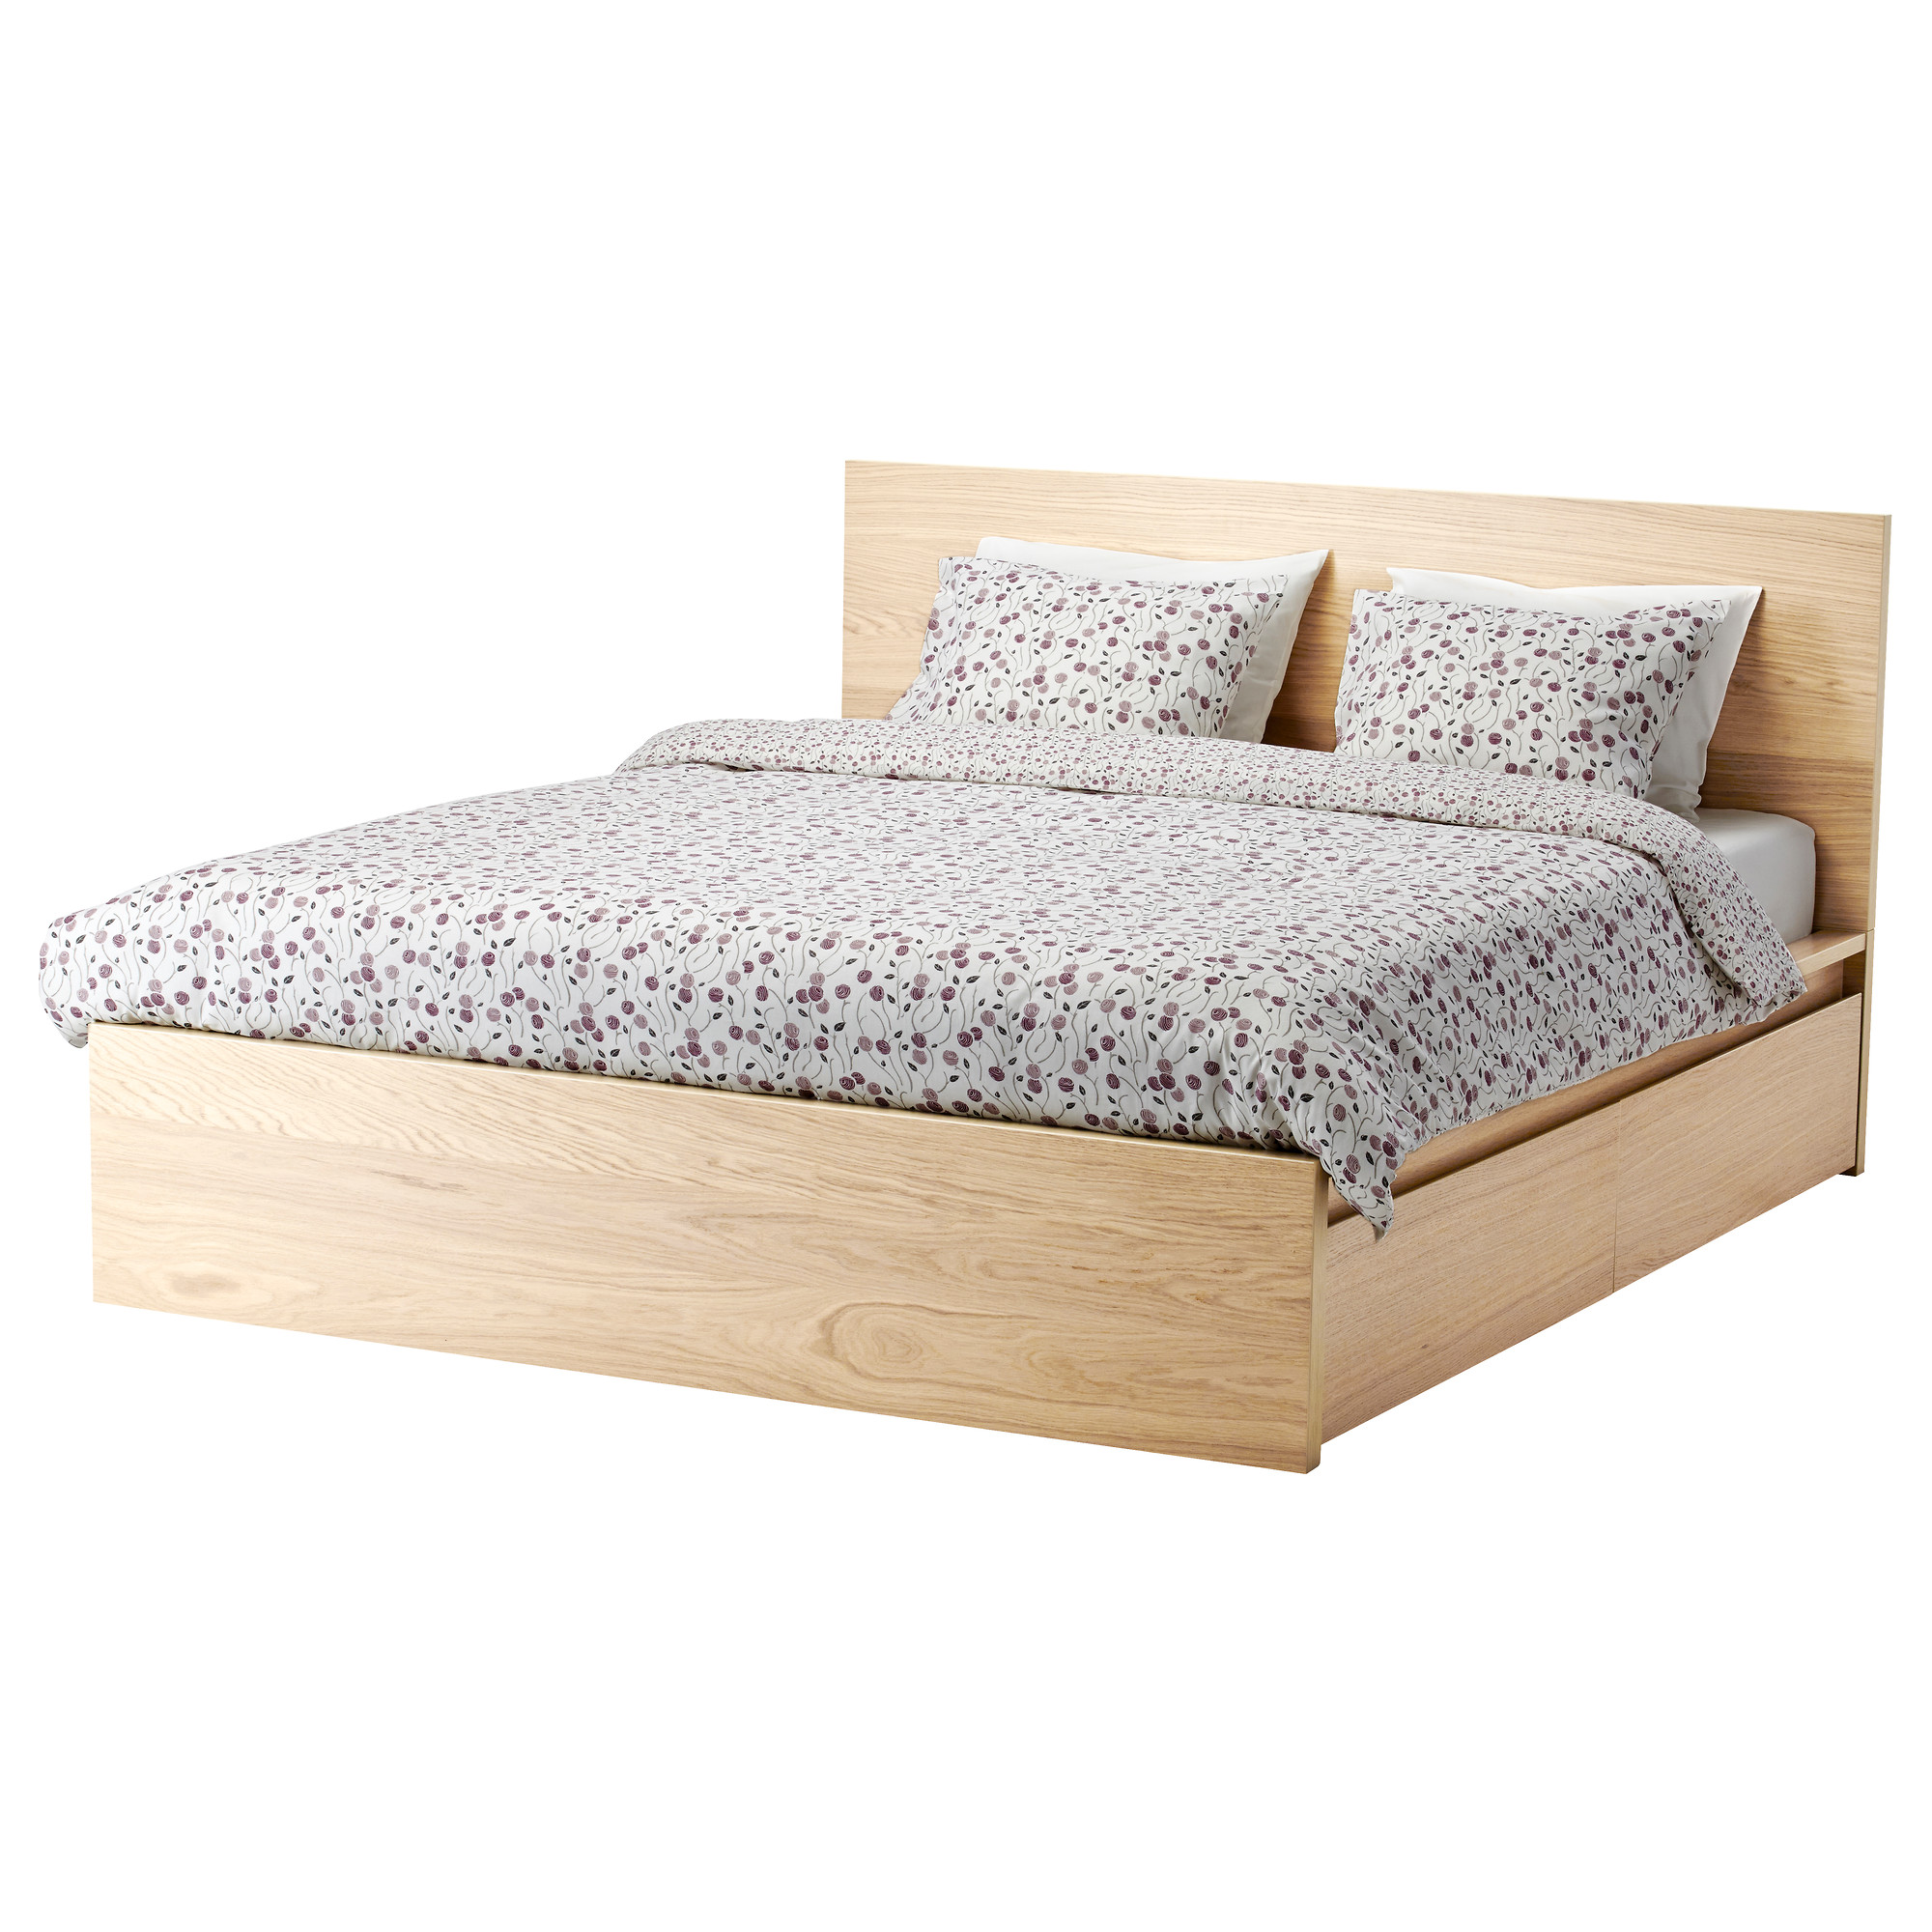 Bed Pictures malm high bed frame/2 storage boxes - queen, luröy - ikea